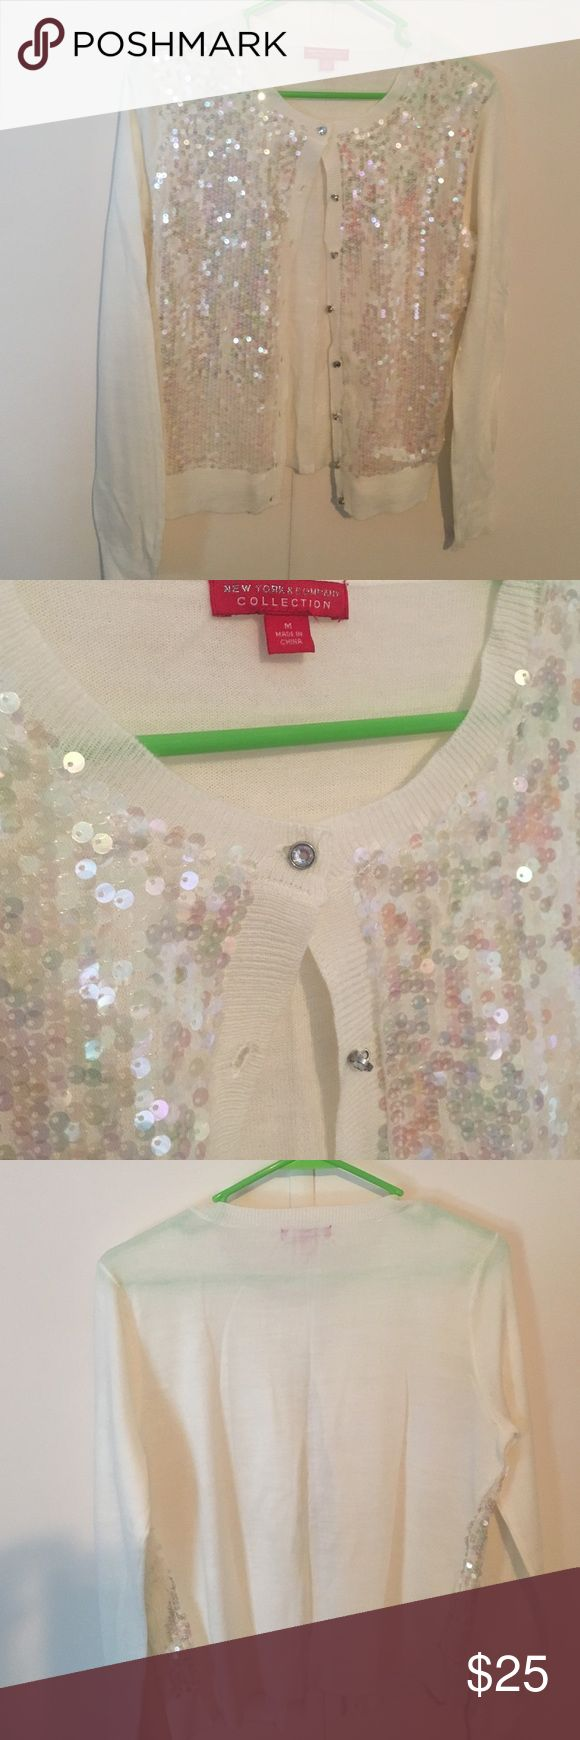 Sequin Cardigan Sequin Cardigan with iridescent sparkles and rhinestone buttons. From New York & company.  Like new condition just needs pressing. Wore one time to Christmas Party. Very pretty for the Holidays. New York & Company Sweaters Cardigans